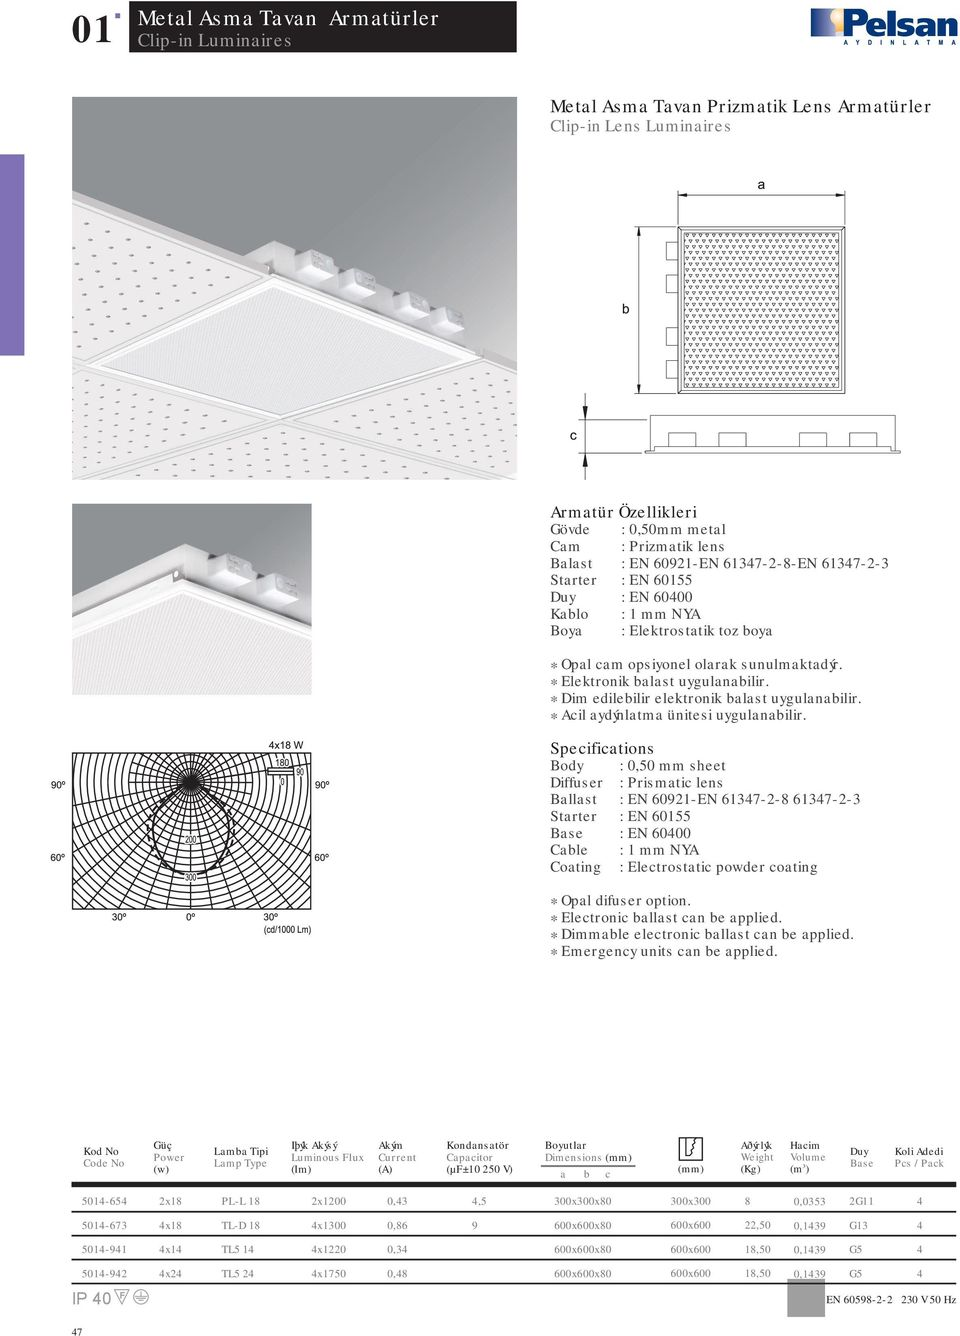 Body : 0,50 mm sheet Diffuser : Prismatic lens Ballast : EN 0921-EN 17-2-8 17-2- : EN 000 Coating : Electrostatic powder coating * Opal difuser option.